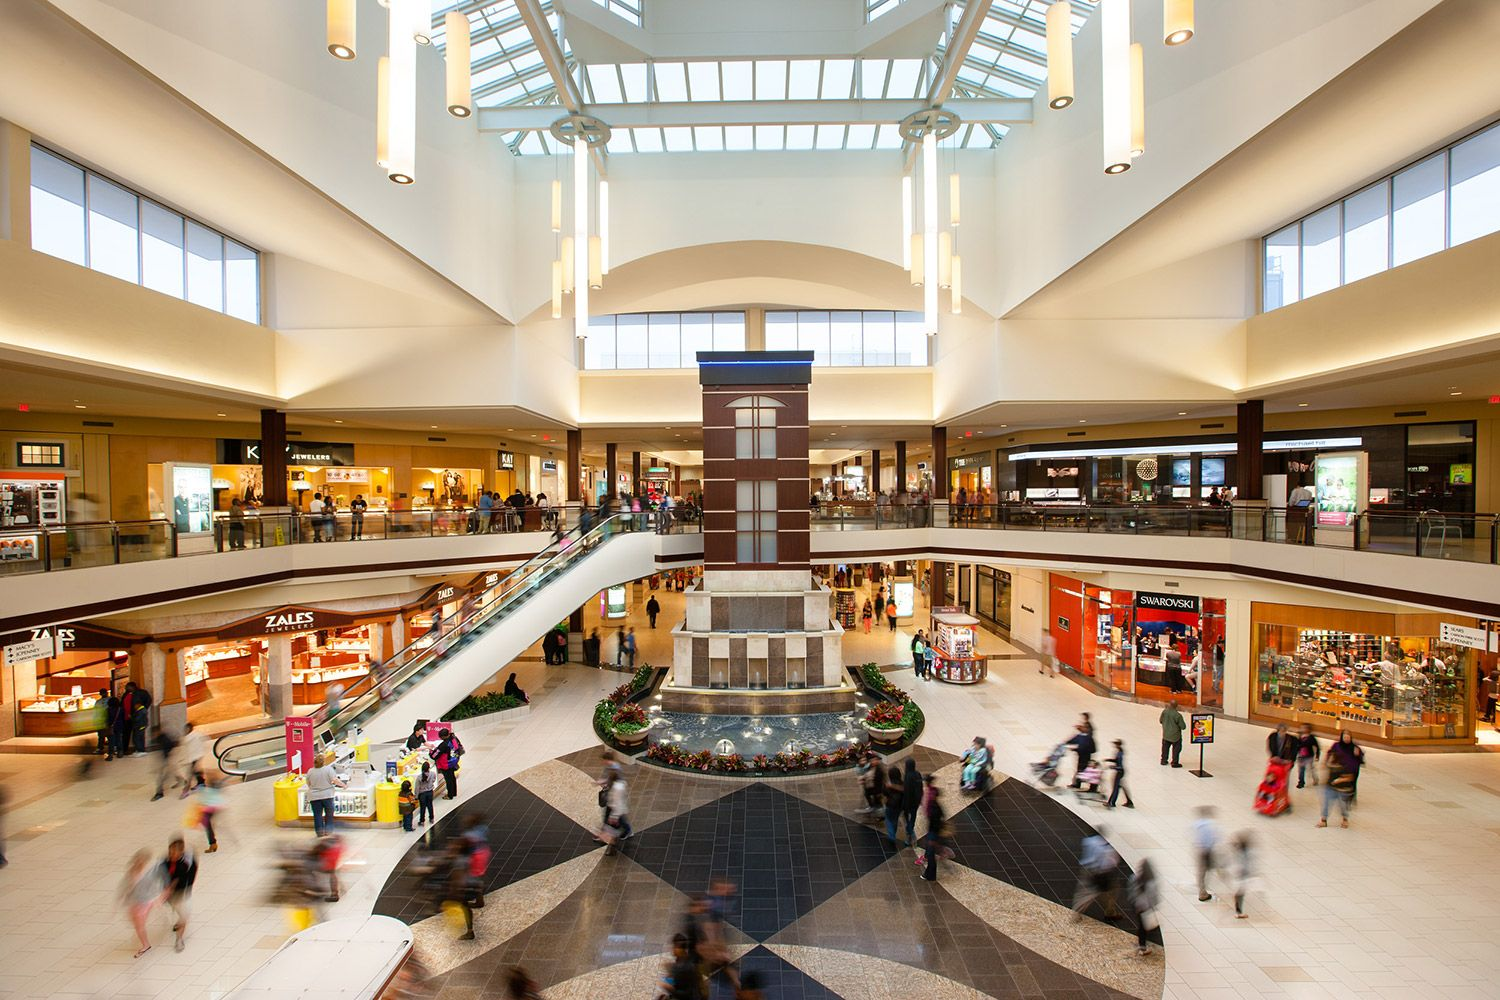 Cherrybrook Square Orland Square A Simon Mall Orland Park Il Mall Elderly Home Working In Retail